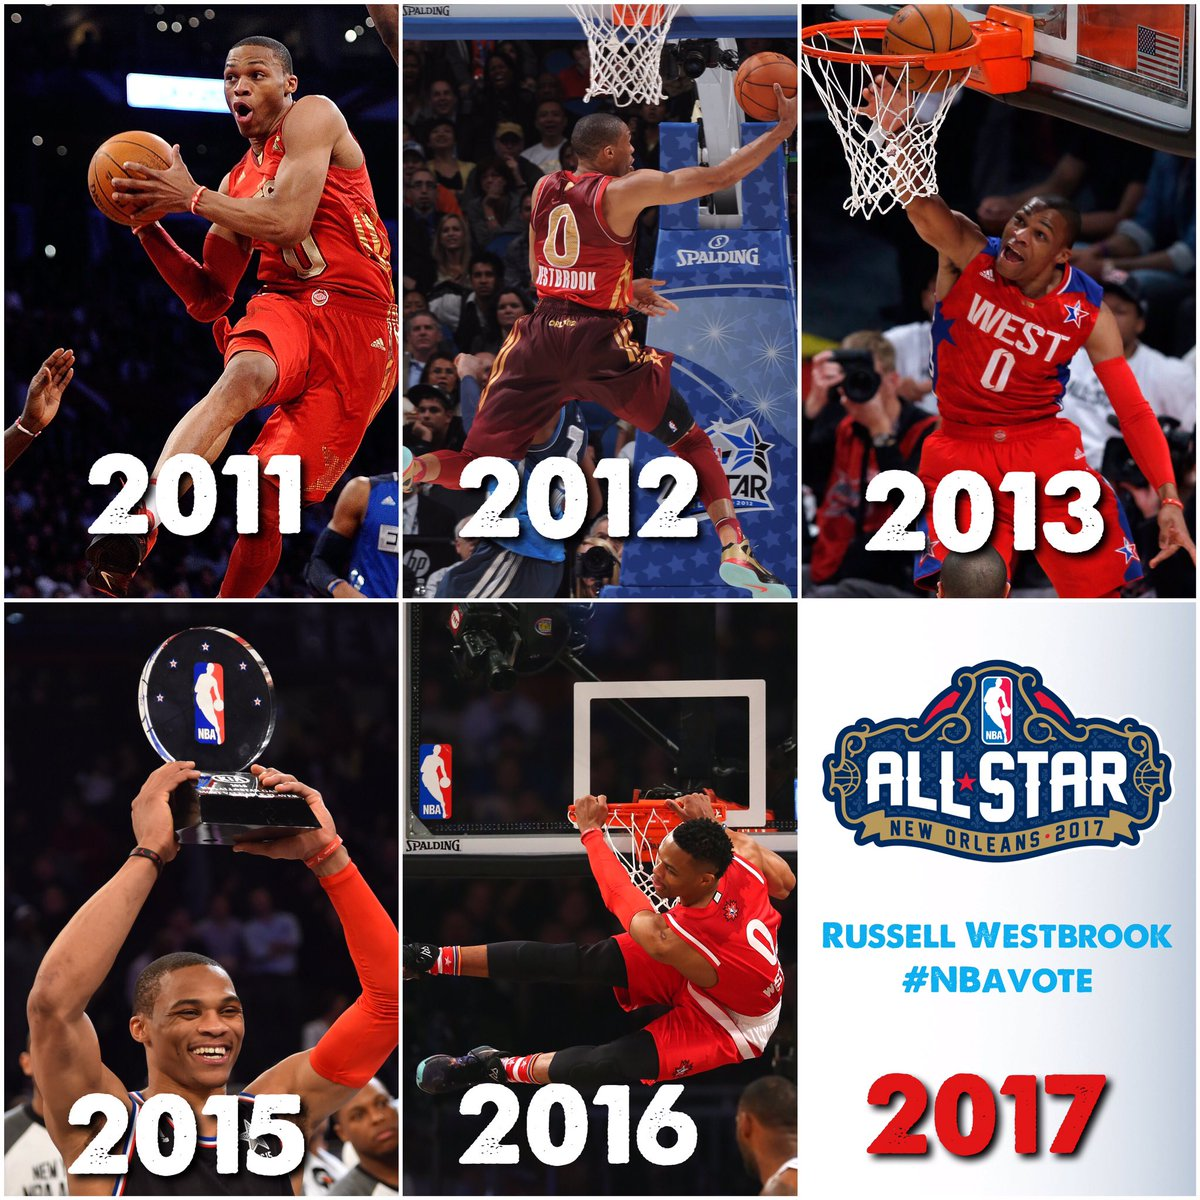 OKC THUNDER On Twitter TBT Hes Been There 5 Times MVP Twice Send Russell Westbrook Back To NBA All RT Counts As NBAVOTE